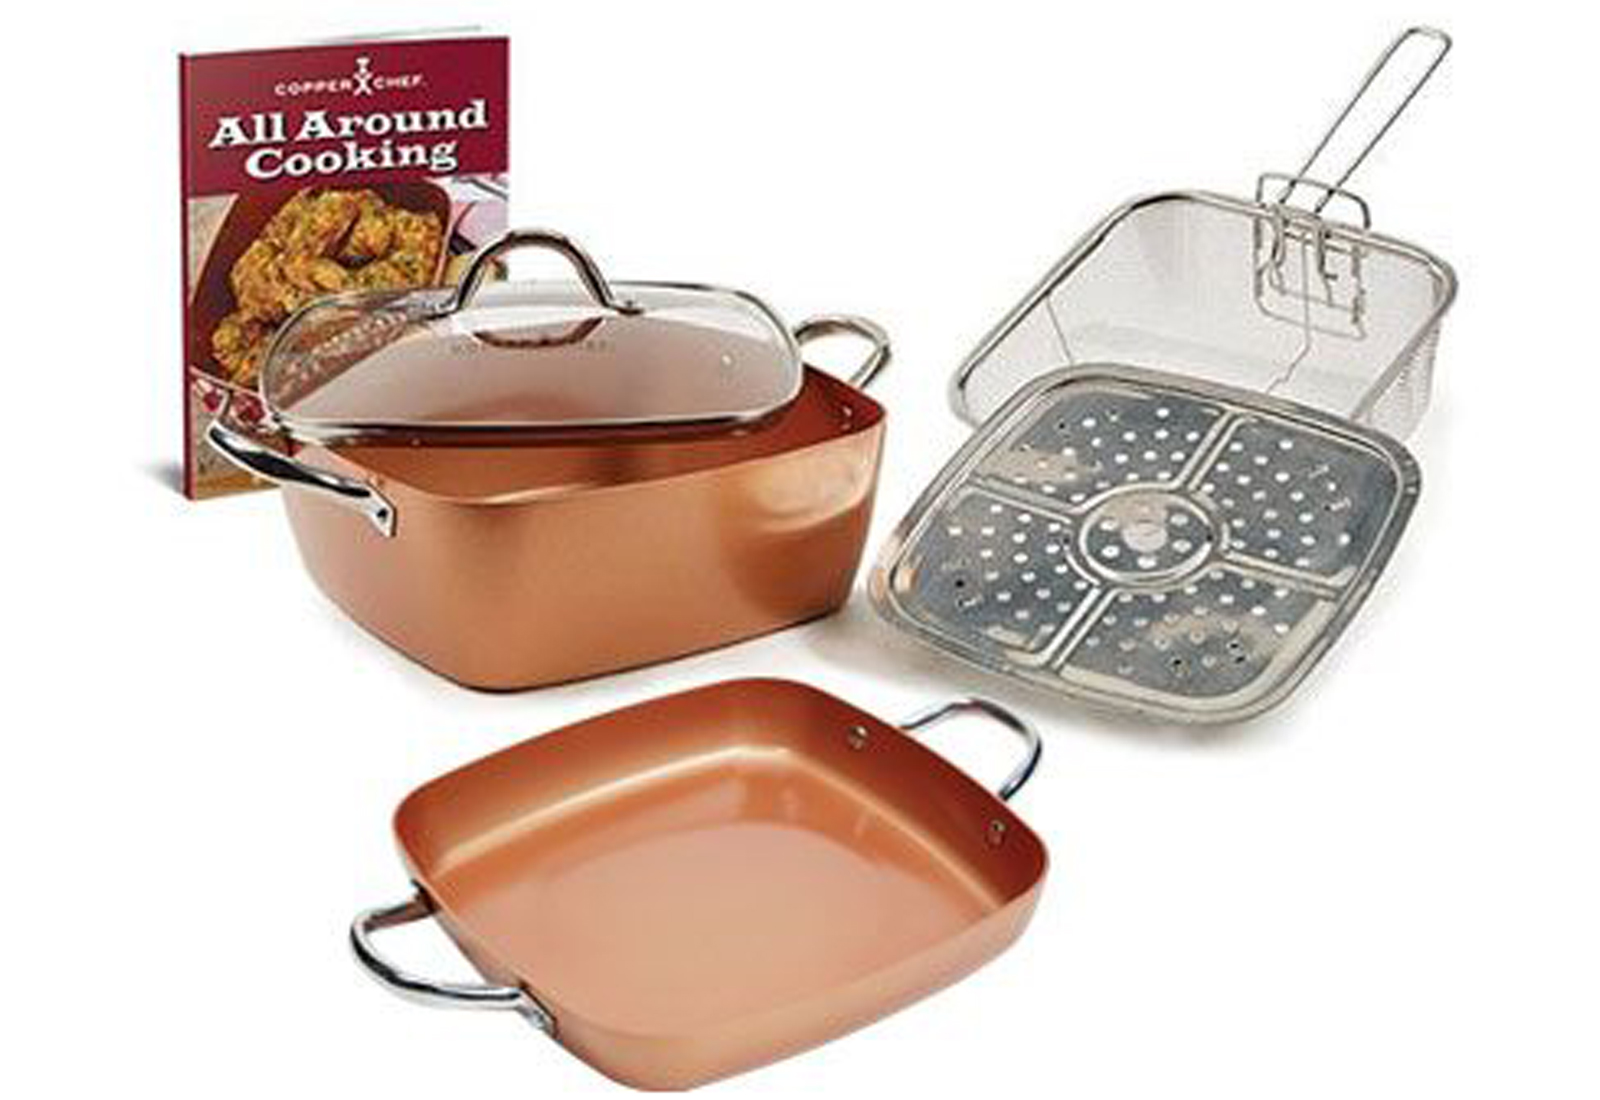 Copper Chef XL 11 In Casserole Pan 6PC Set Product Image